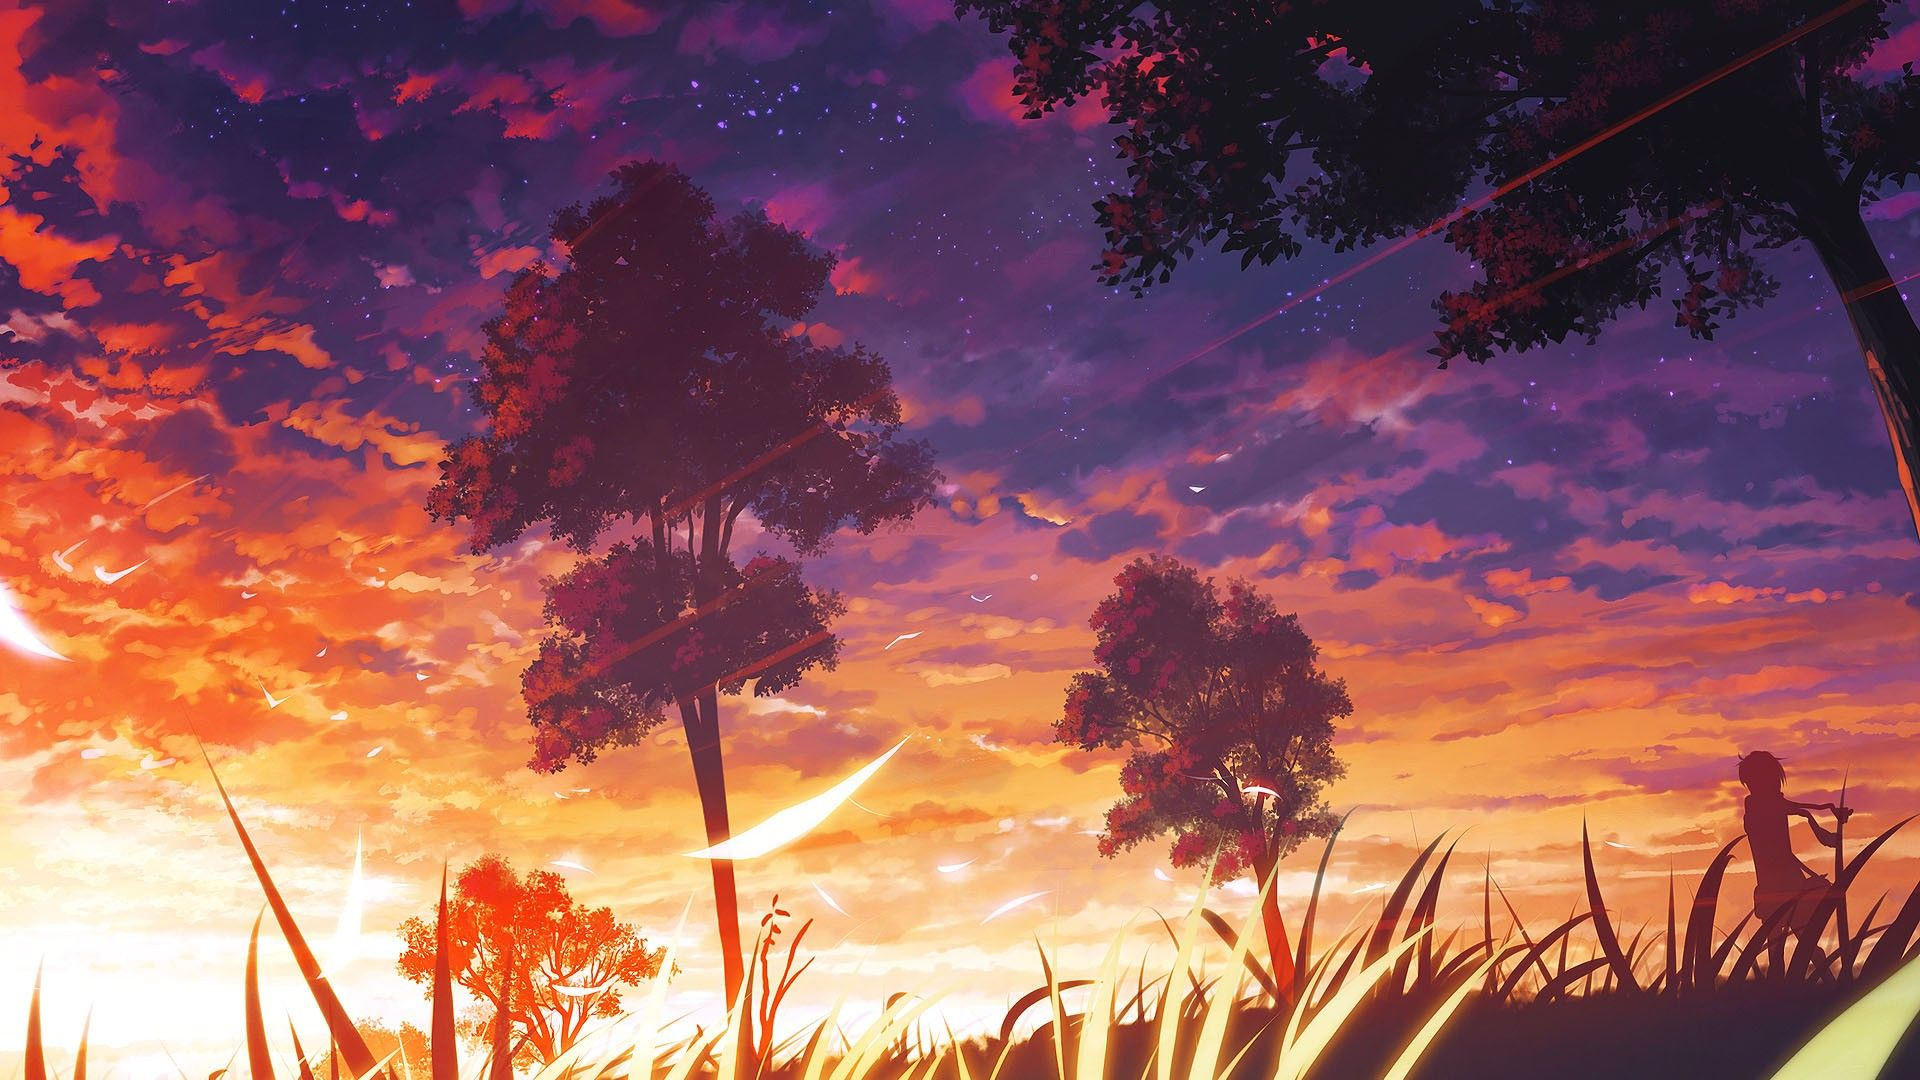 Beautiful Anime Landscapes Wallpapers   Top Beautiful Anime 1920x1080